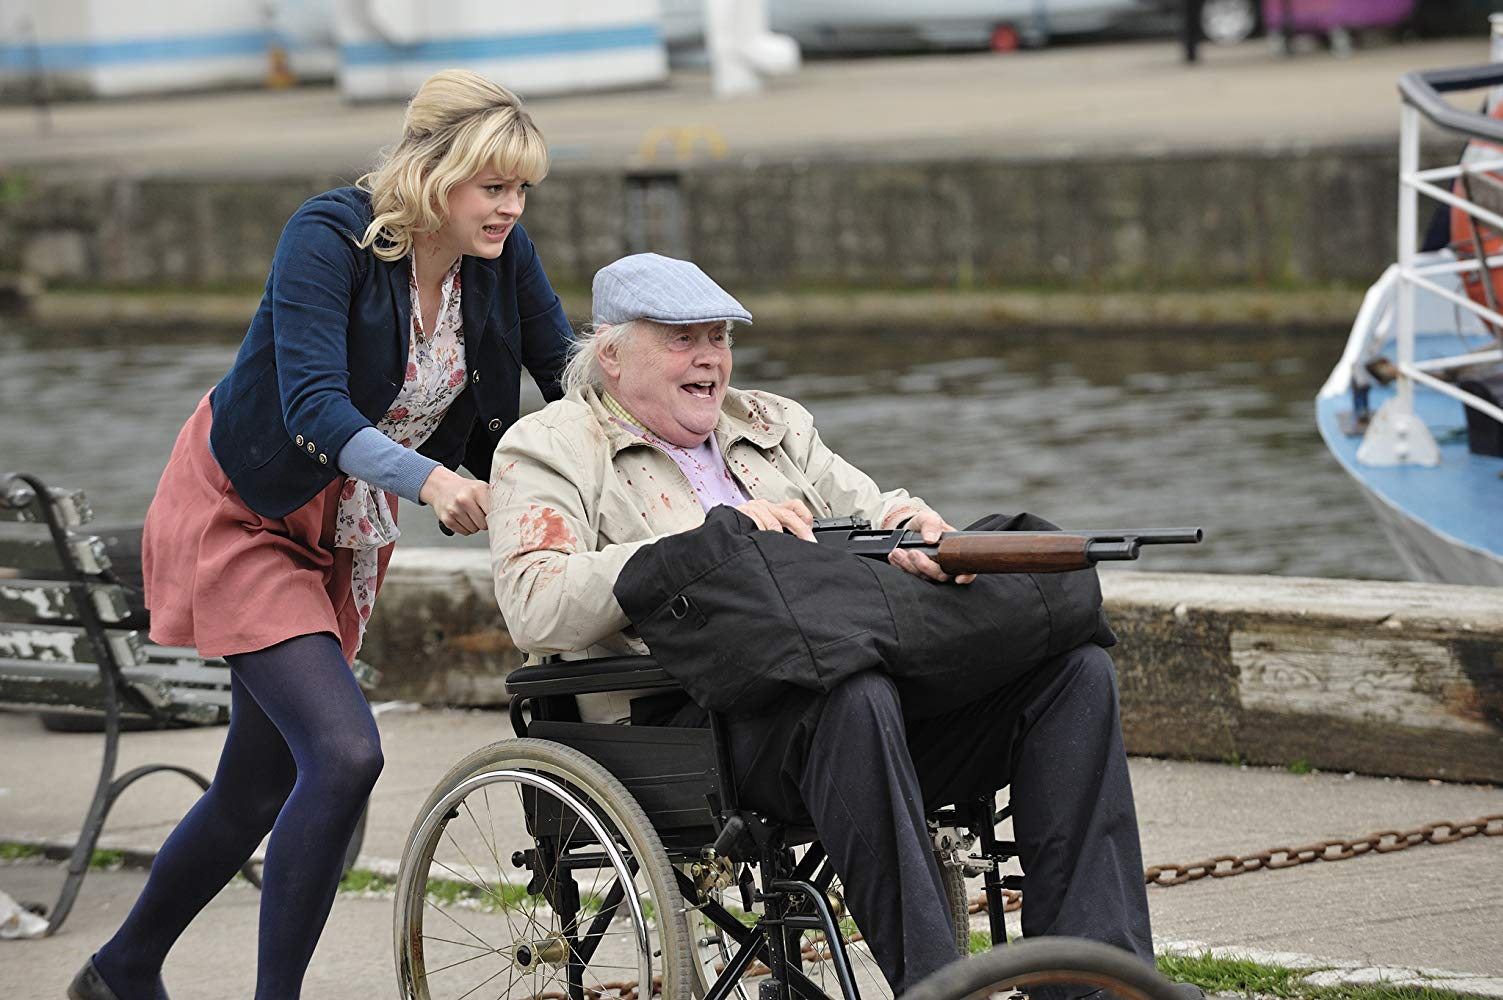 Dudley Sutton and Georgia King in Cockneys vs Zombies (2012)